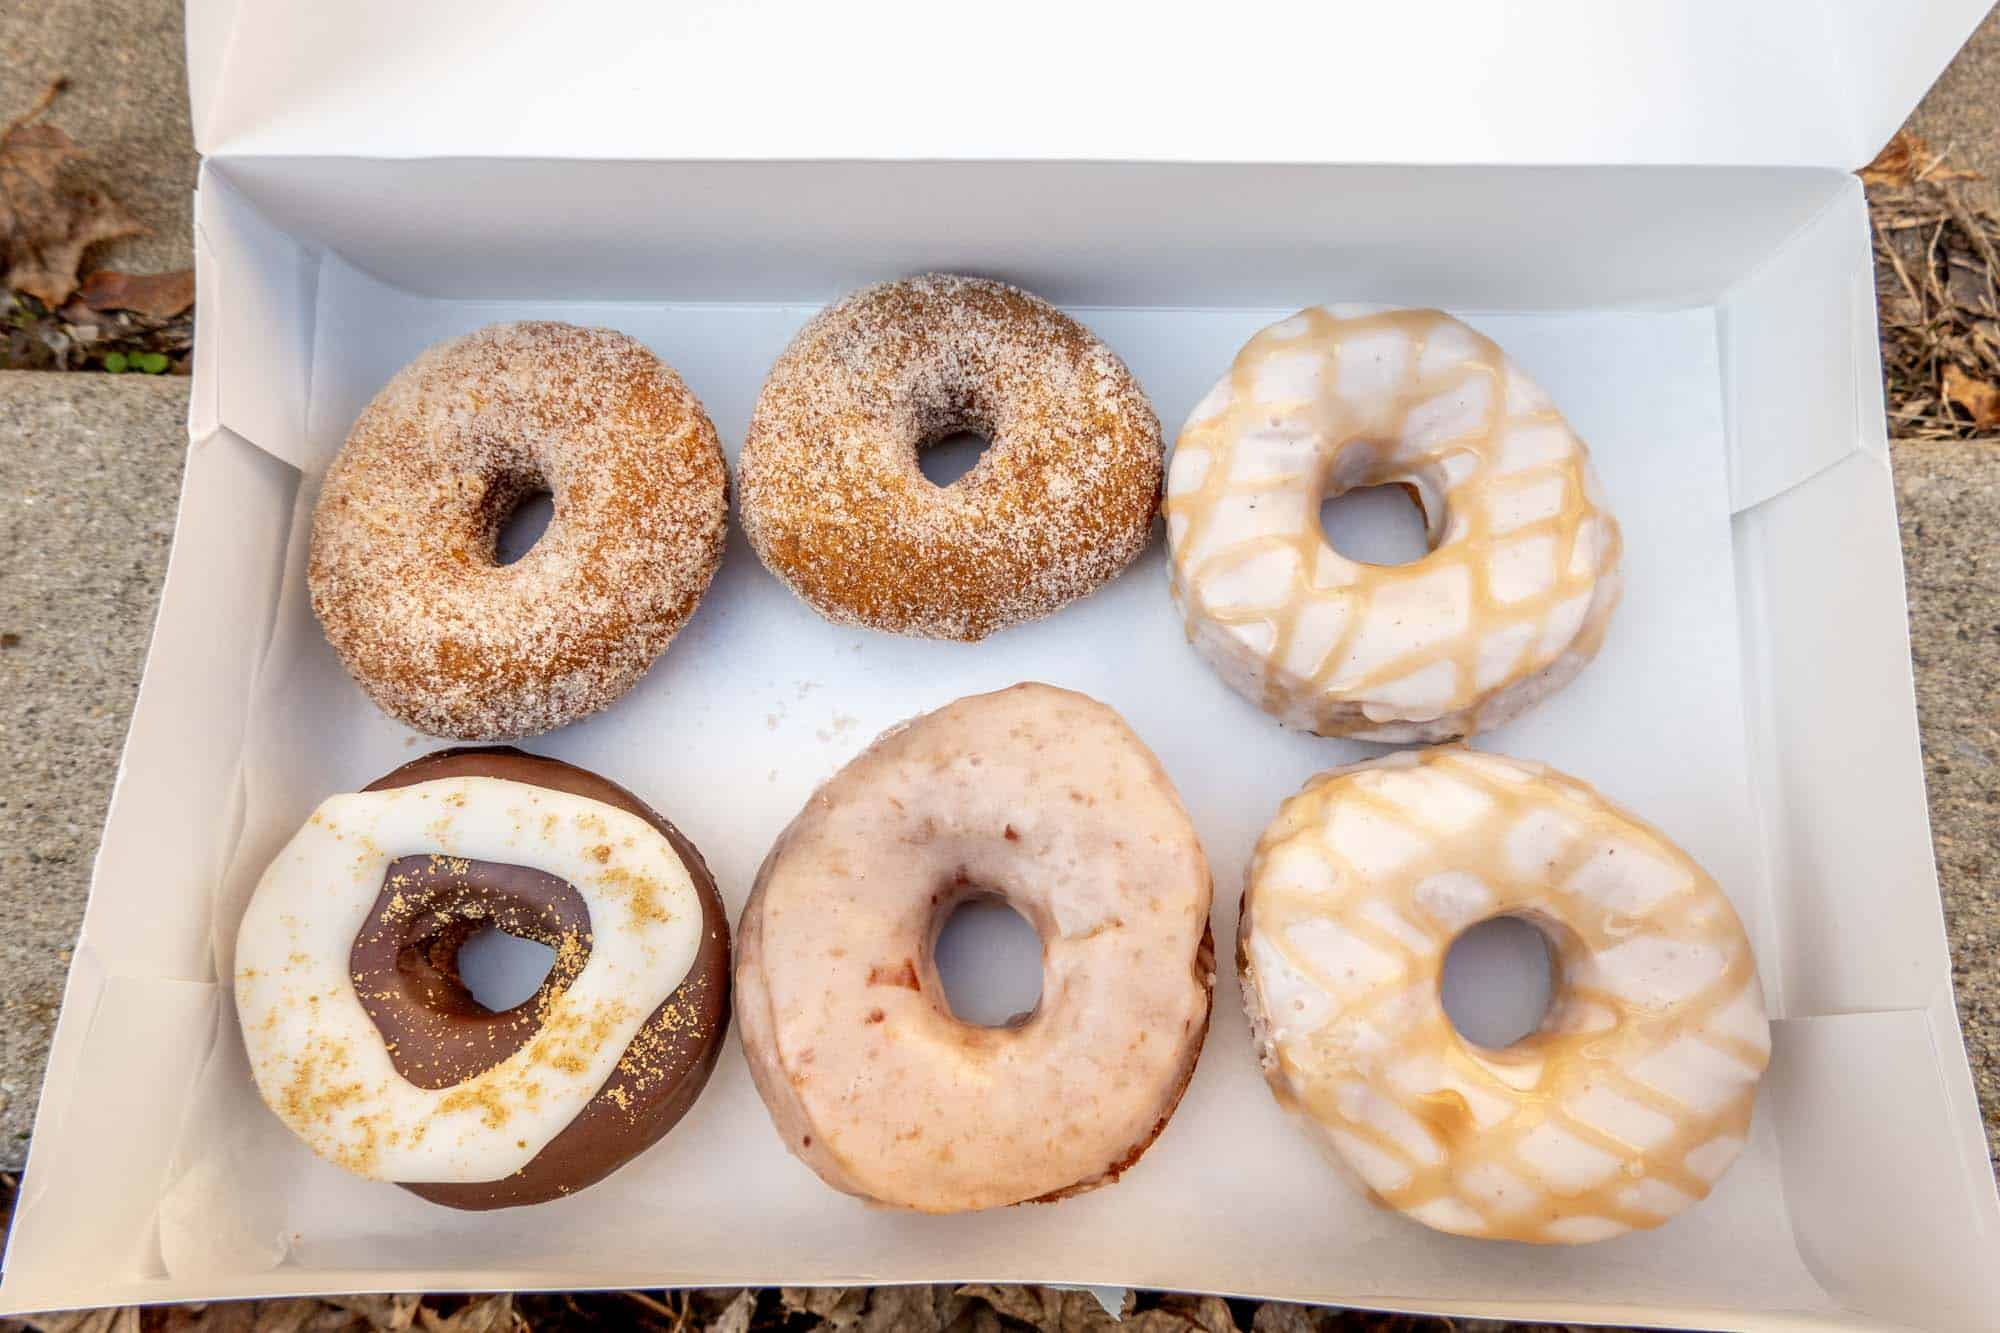 Six donuts topped with sugar and icing in a box